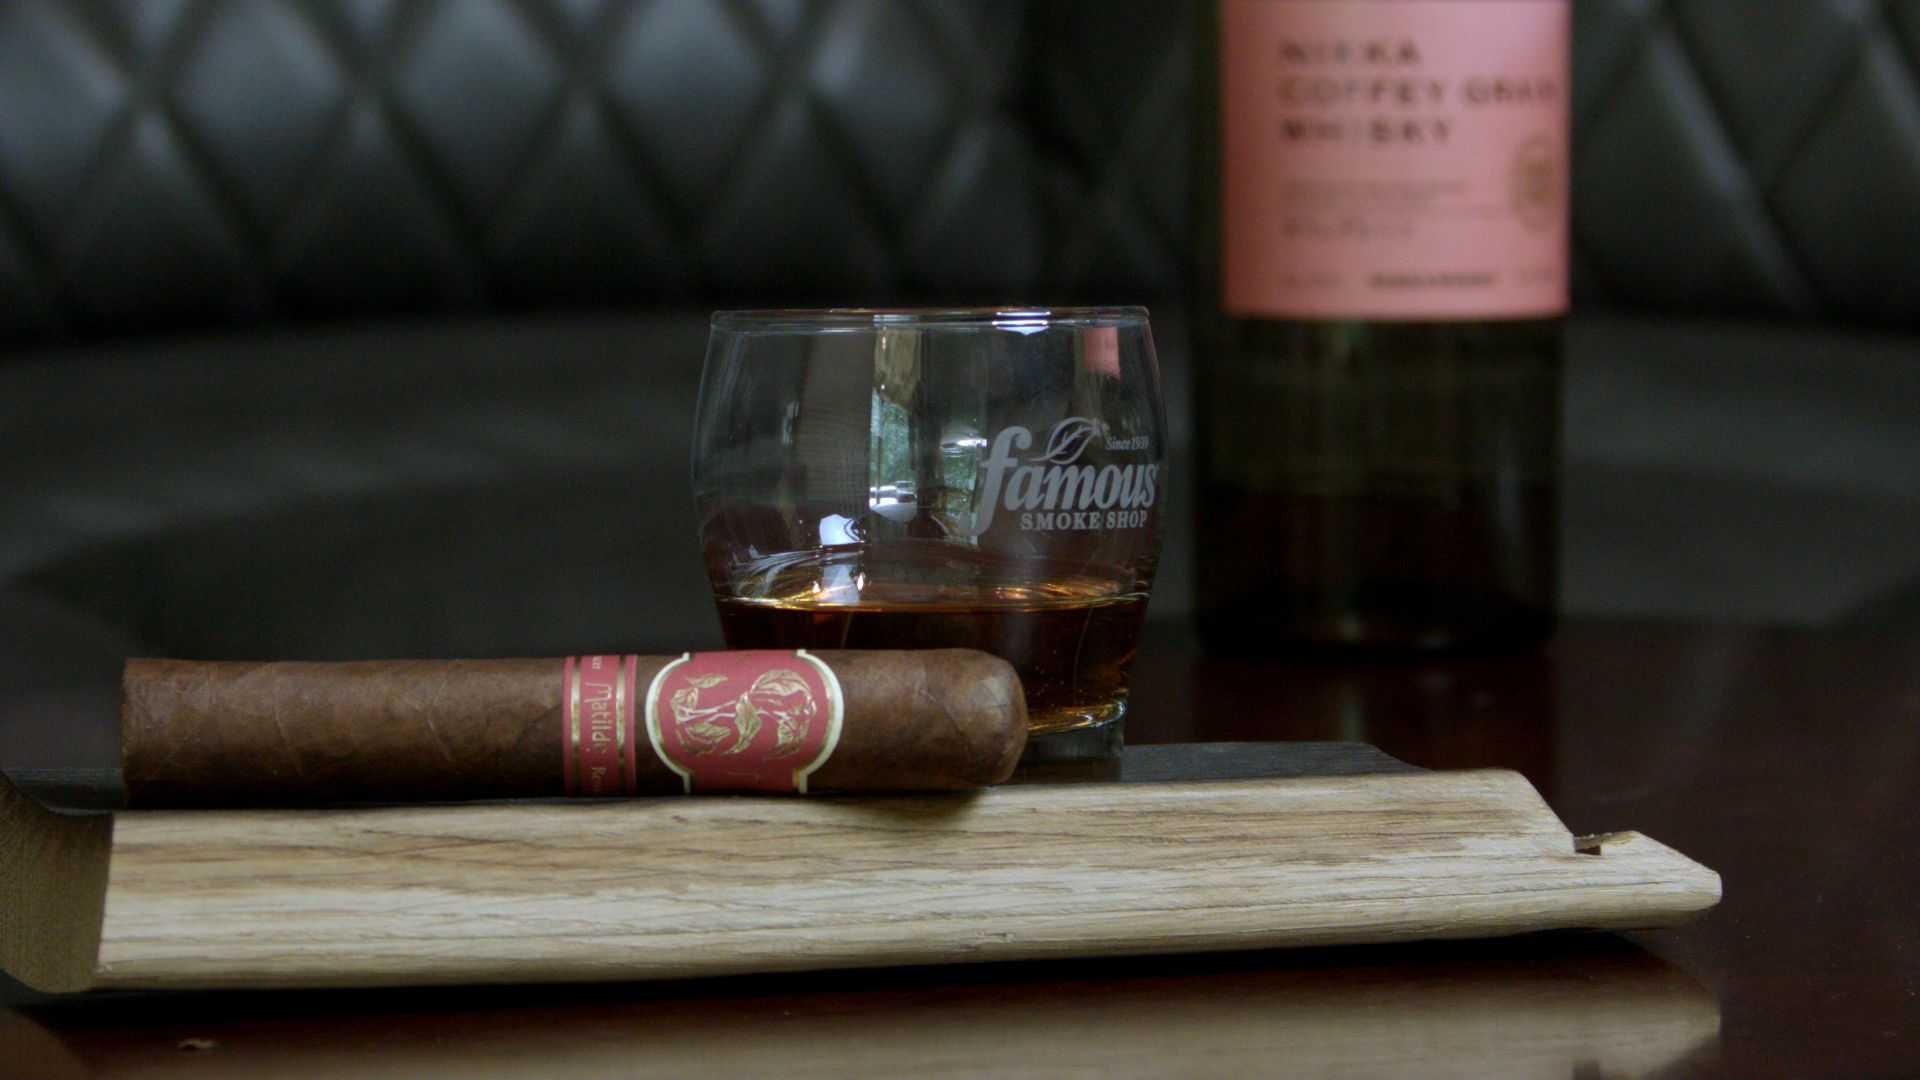 matilde renacer robusto cigar and famous smoke shop rocks glass on a wooden stave with a bottle of nikka coffee grain whisky cigar pairing